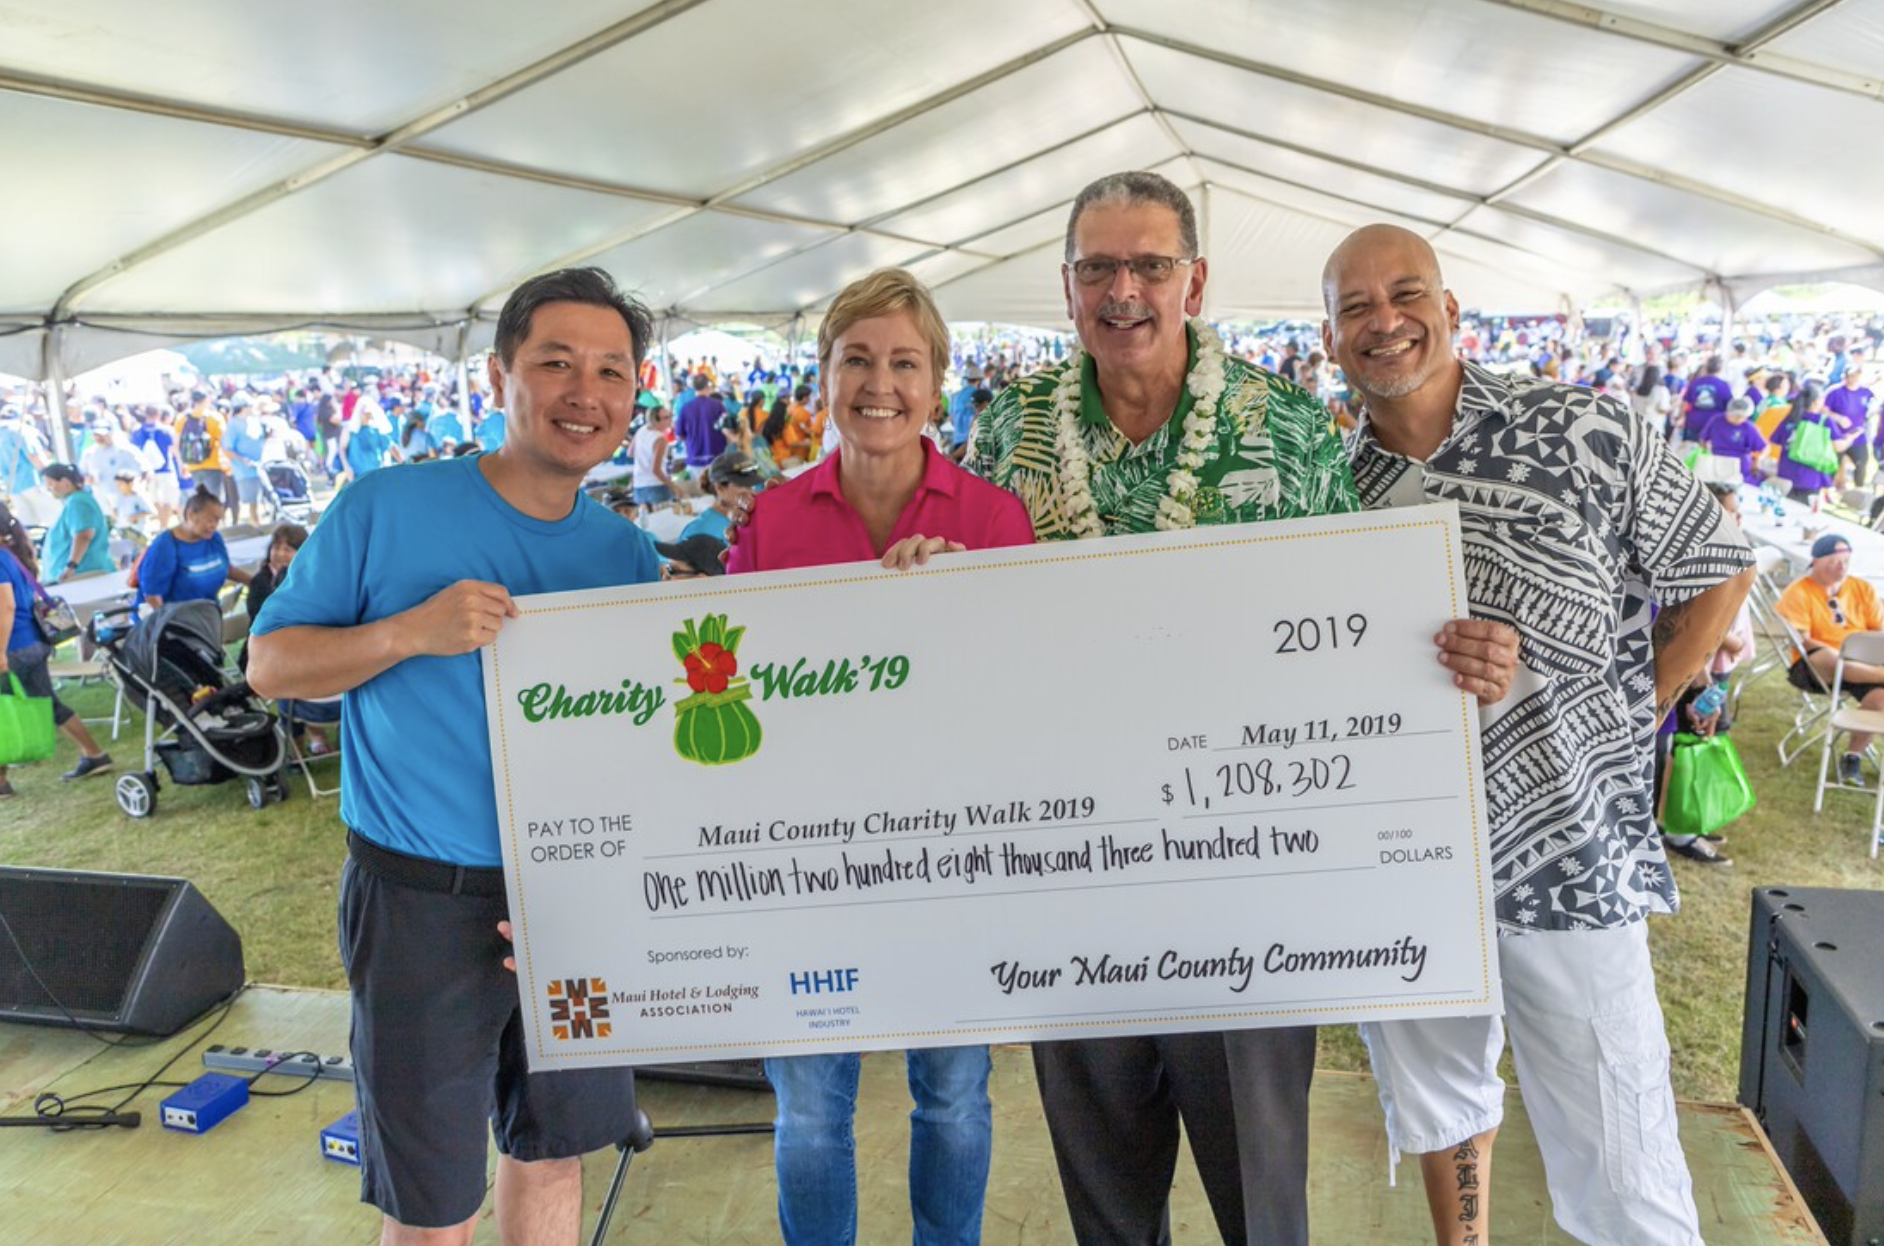 42nd Annual Charity Walk Returns to Help 100 Maui Nonprofits With Online Event